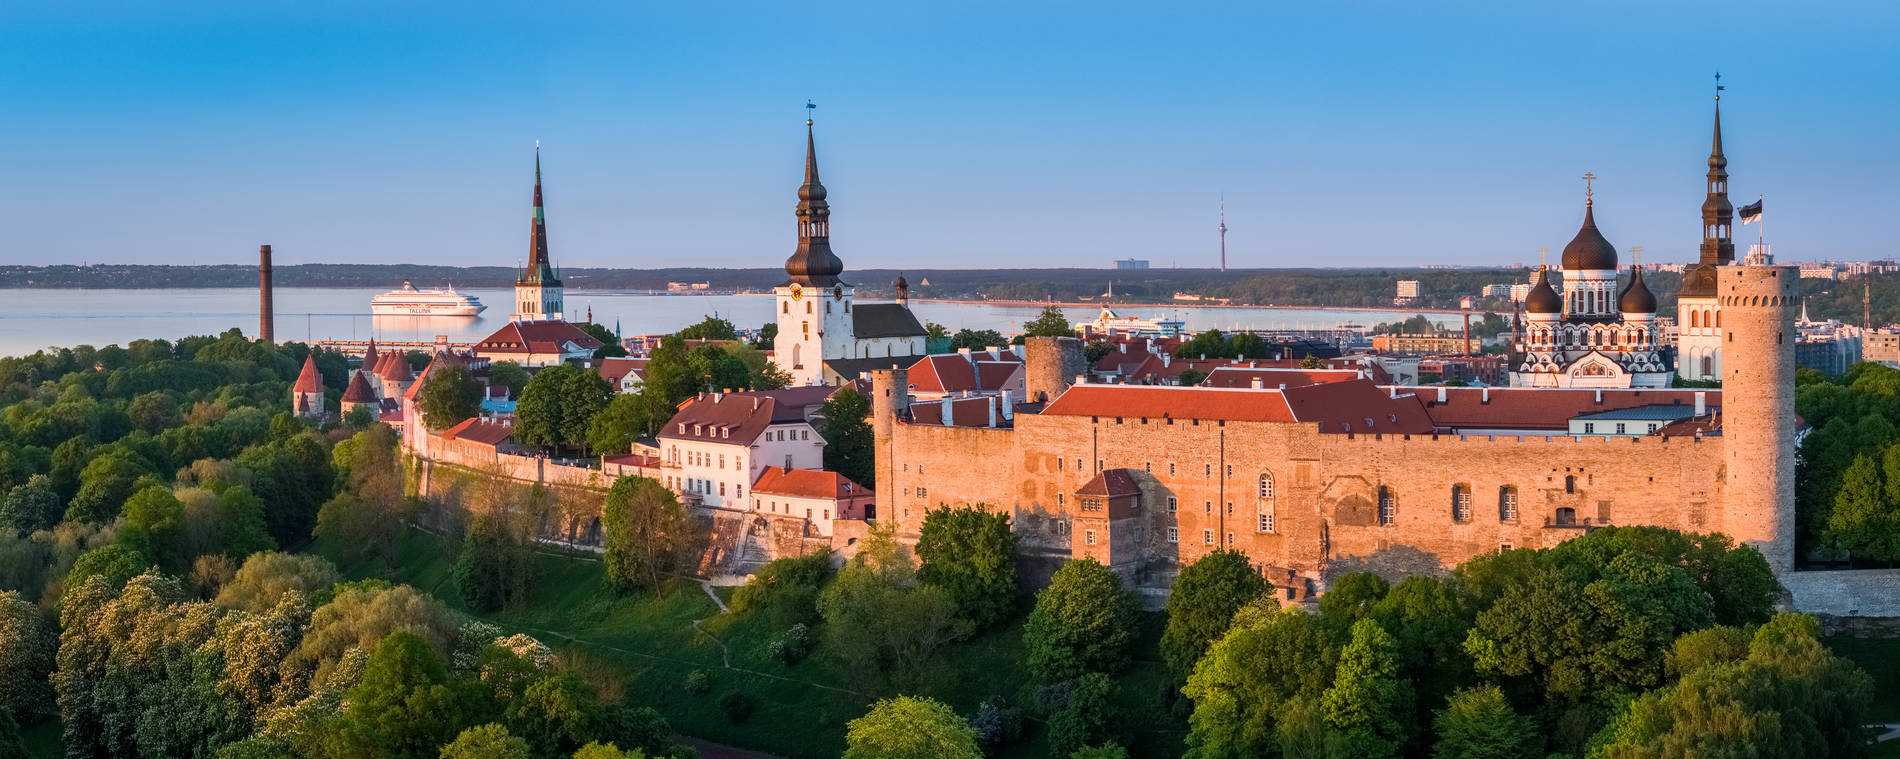 Aerial view of Toompea